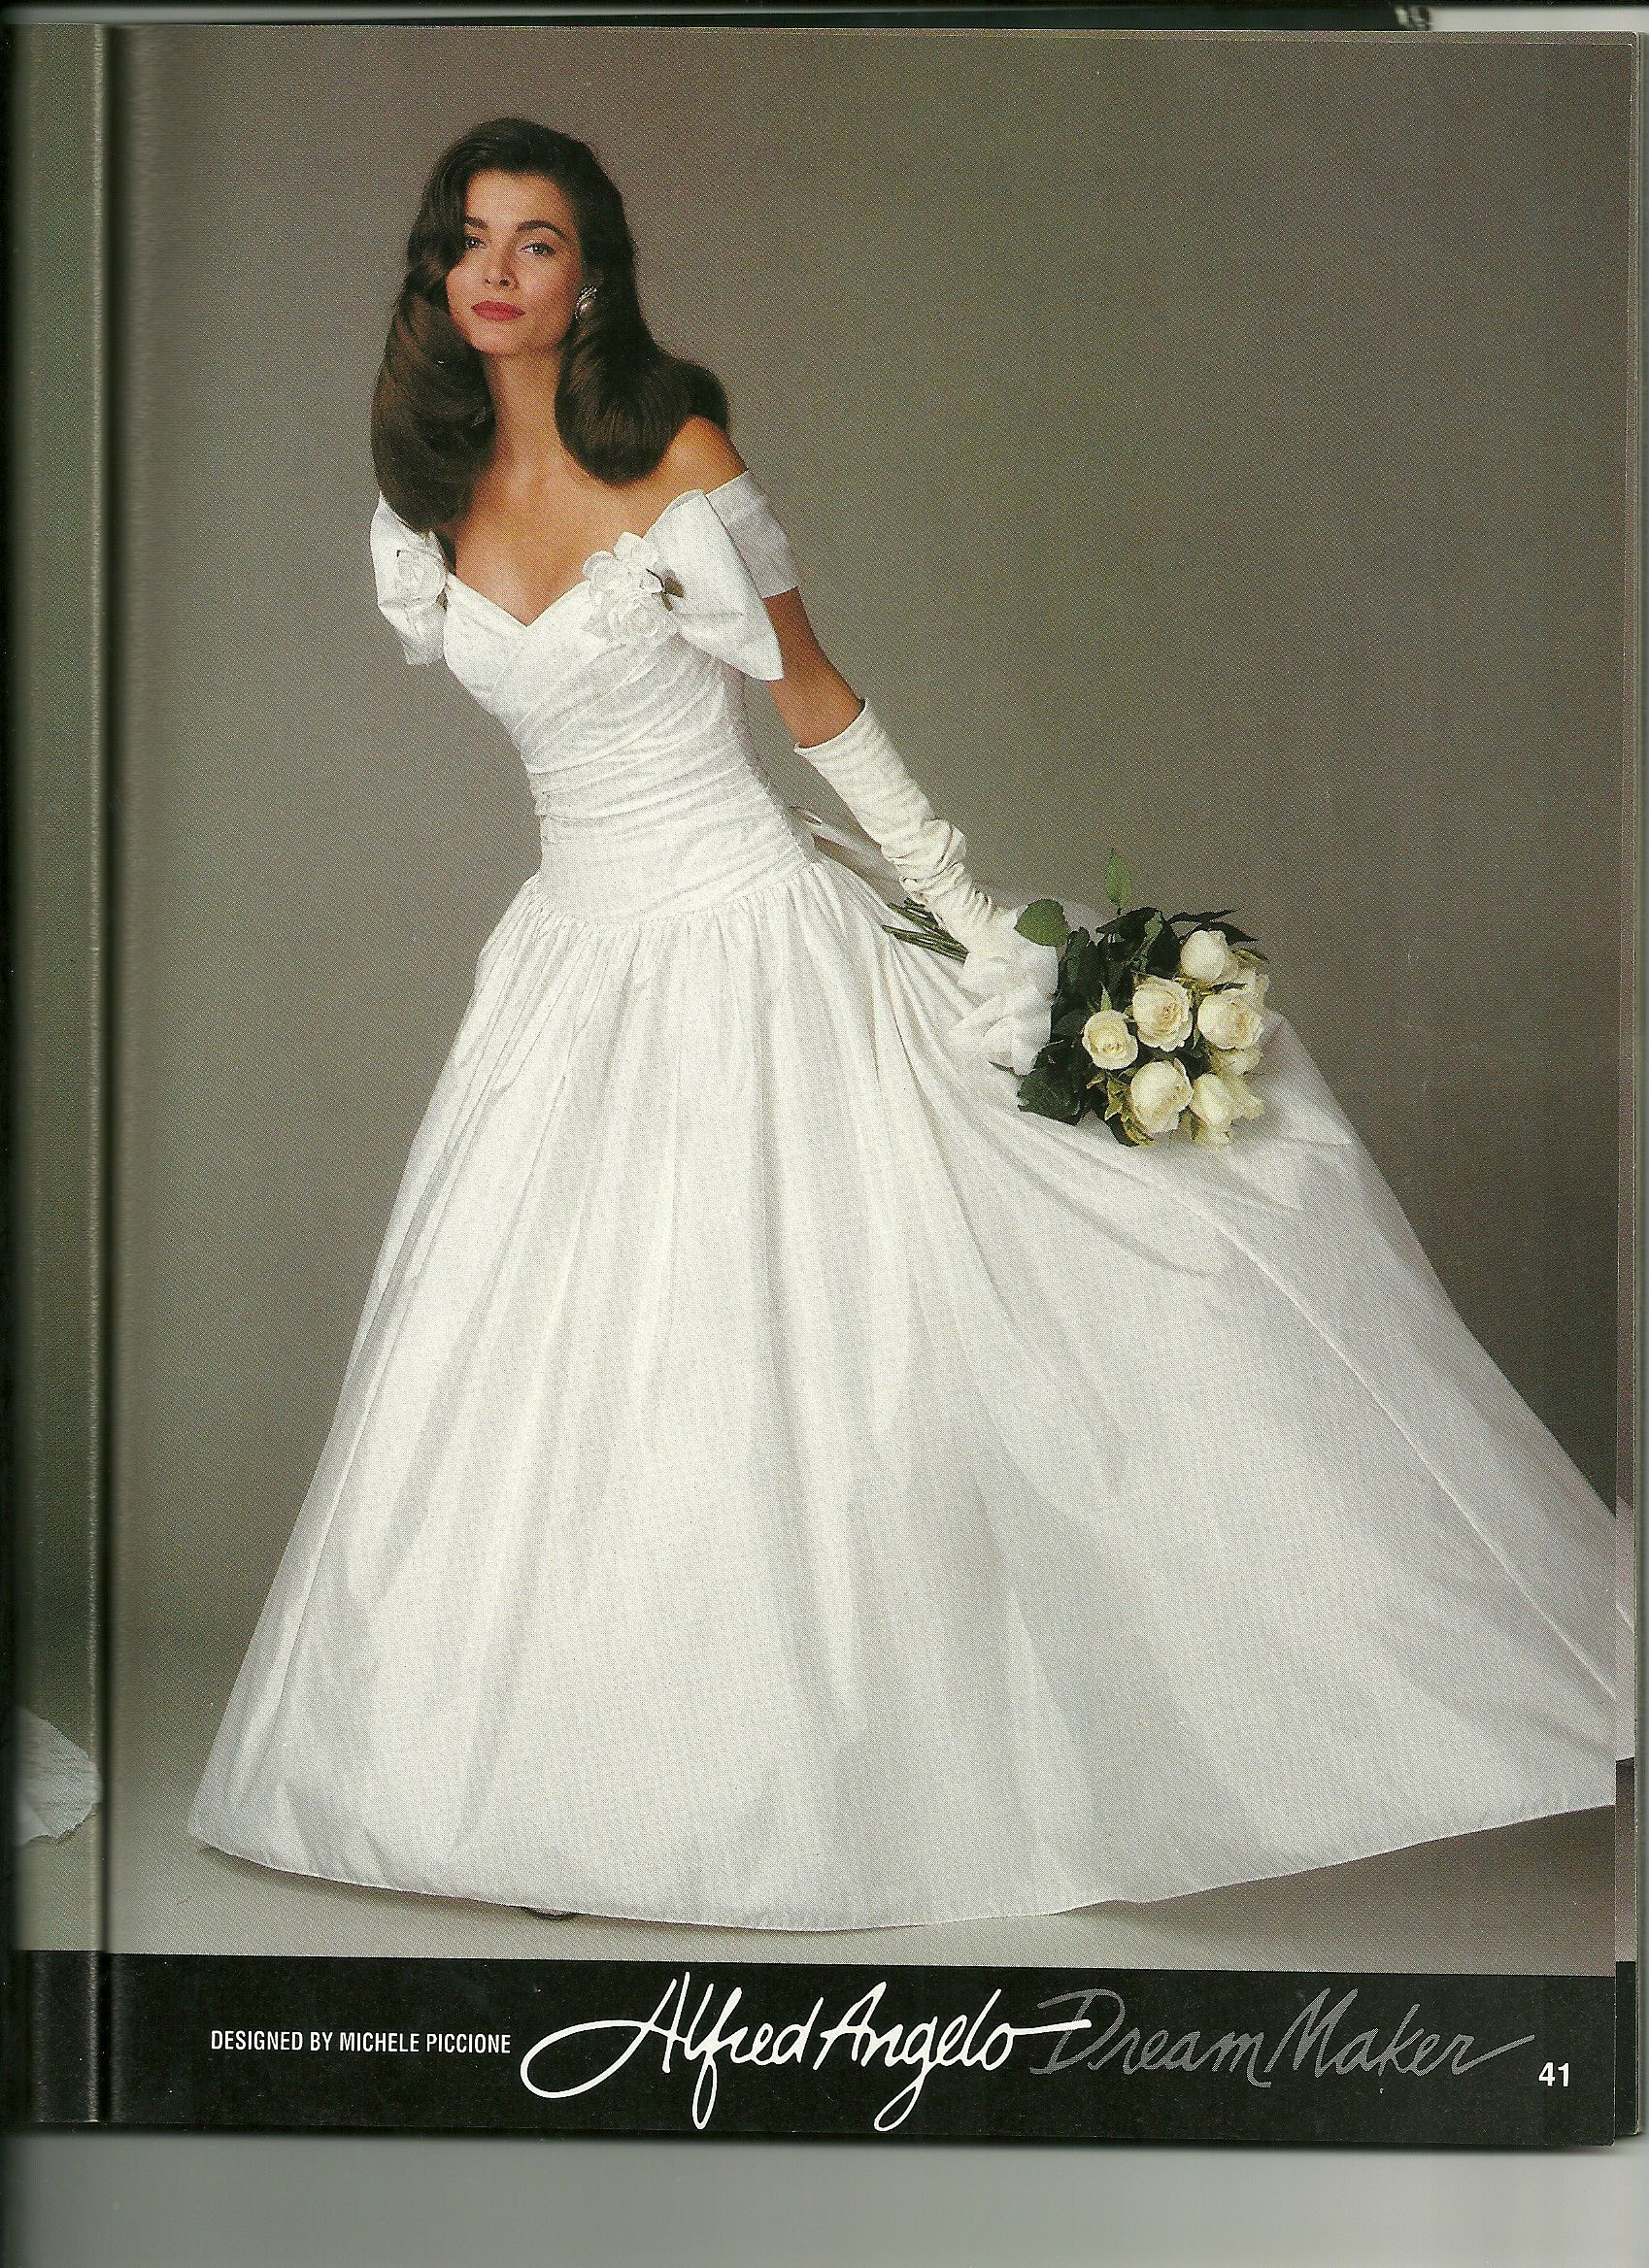 Alfred angelo dream maker wedding dress  Classic Alfred Angelo gown  s  Pinterest